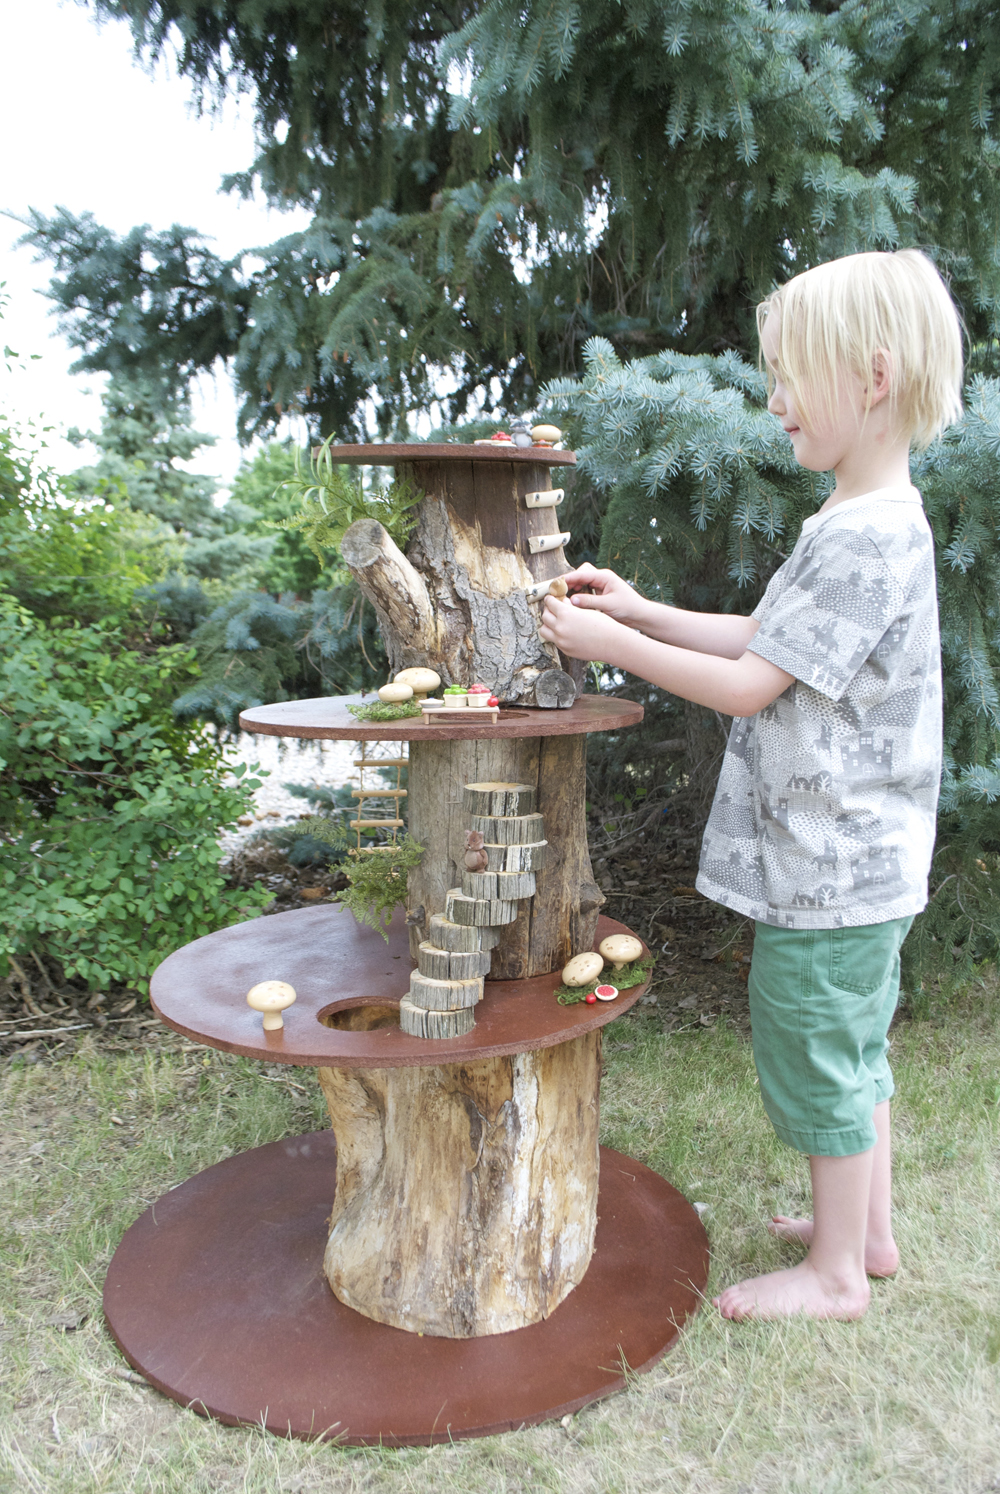 Miniature Tree House mer mag | a family reunion and a miniature play treehouse - mer mag